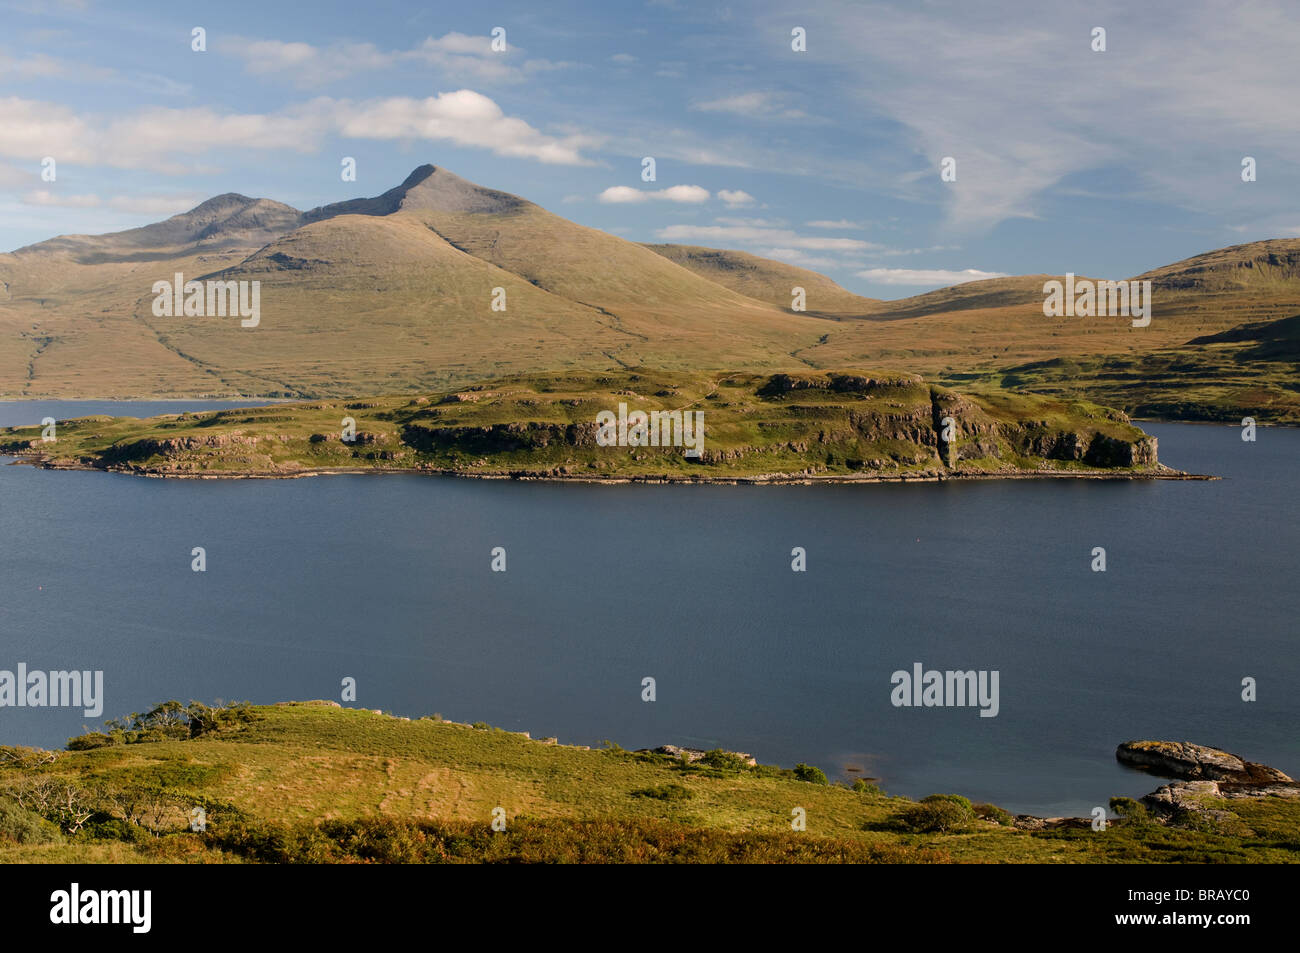 The uninhabited Island of Eorsa in Loch na Keal Mull with Ben More 967m towering beyond. Scotland.  SCO 6693 - Stock Image